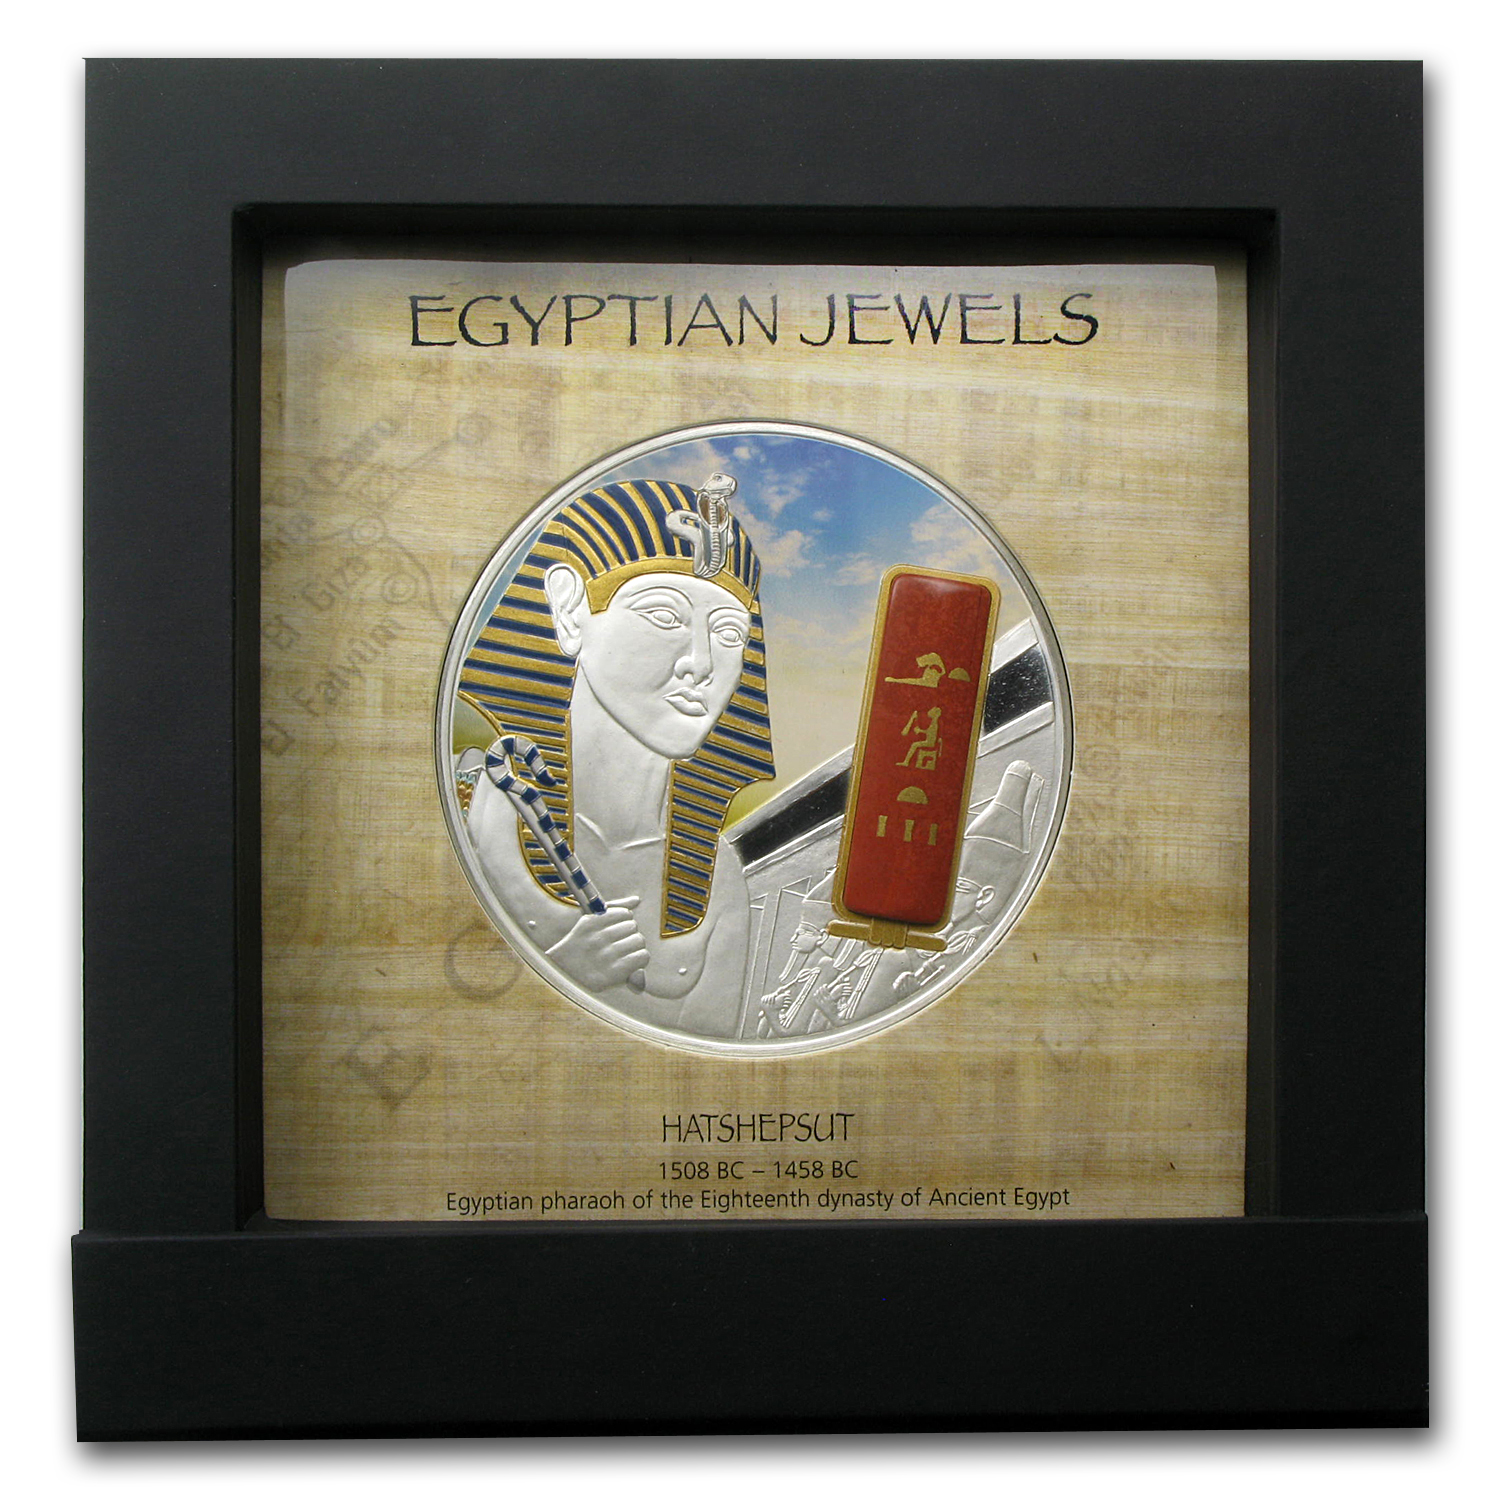 Fiji 2012 2 oz Proof Silver $50 Egyptian Jewels - Hatshepsut